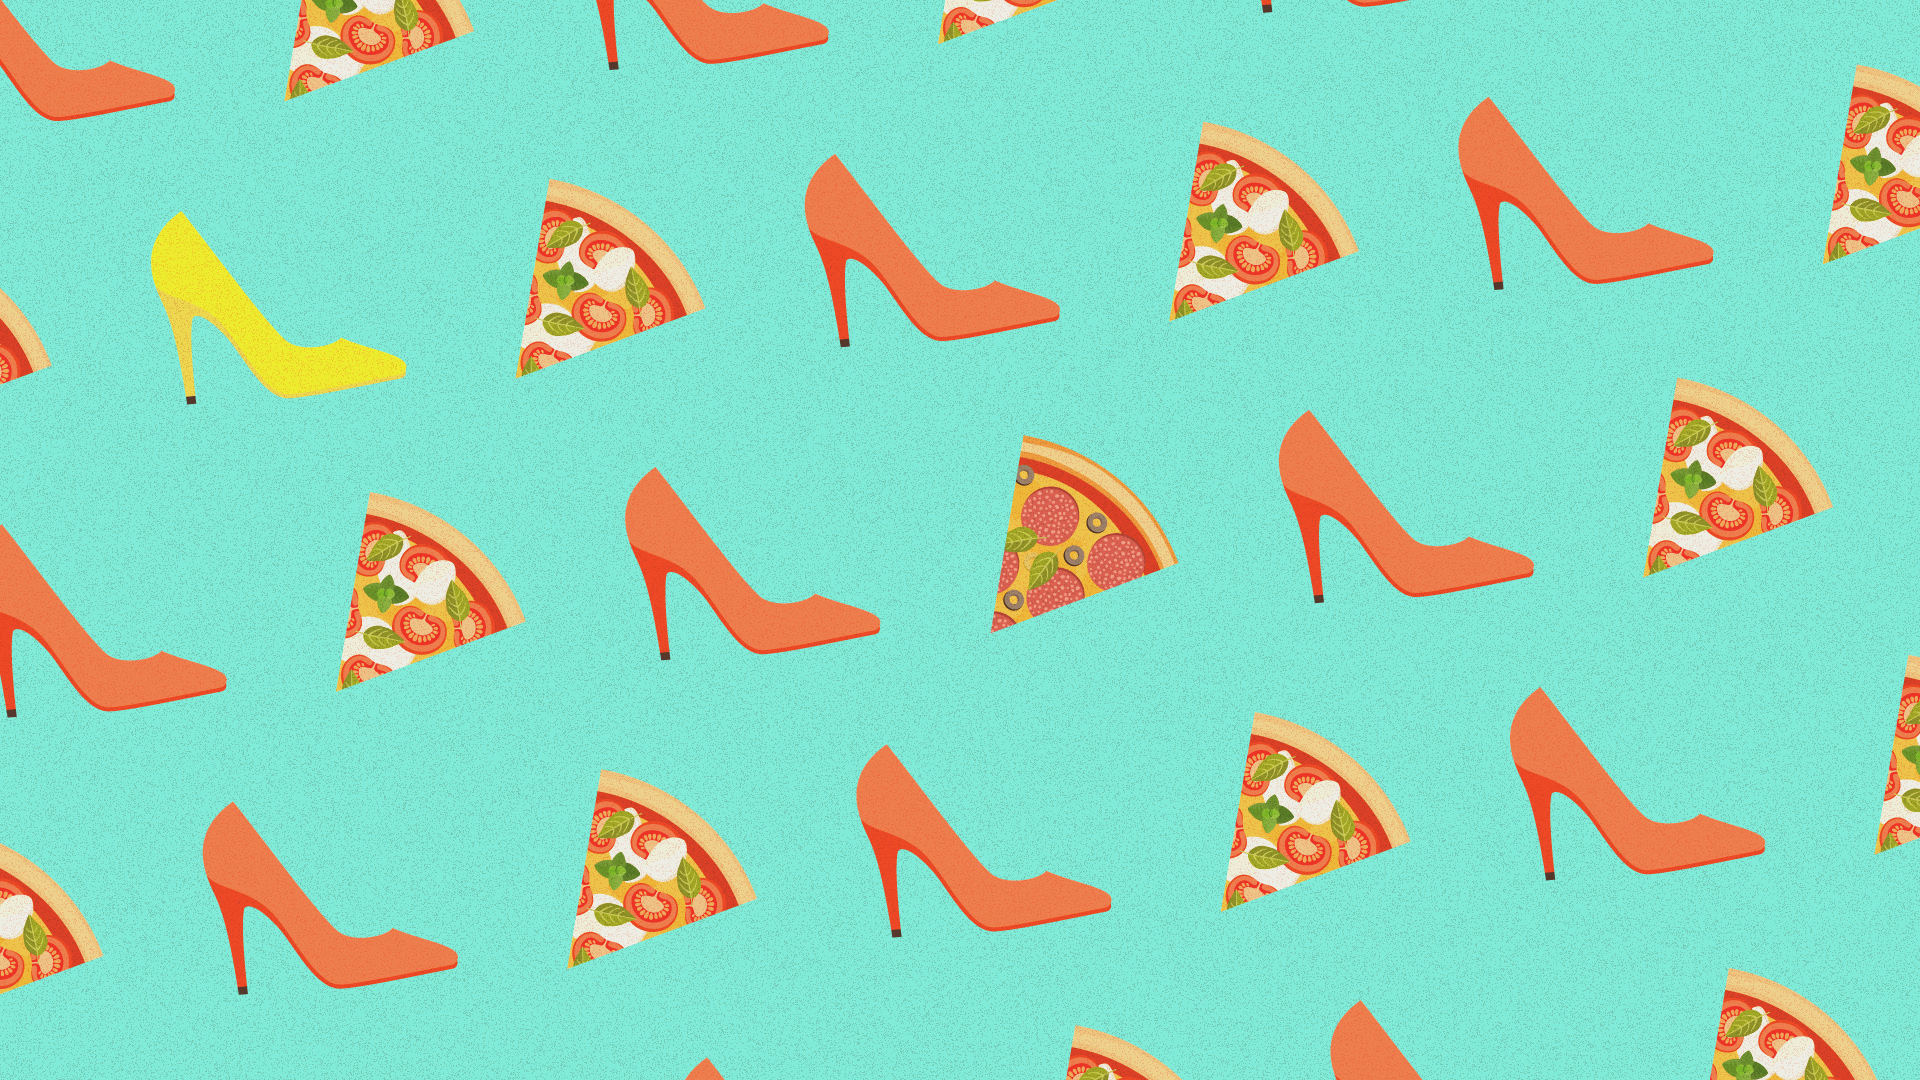 Fashion: it's all about pizza